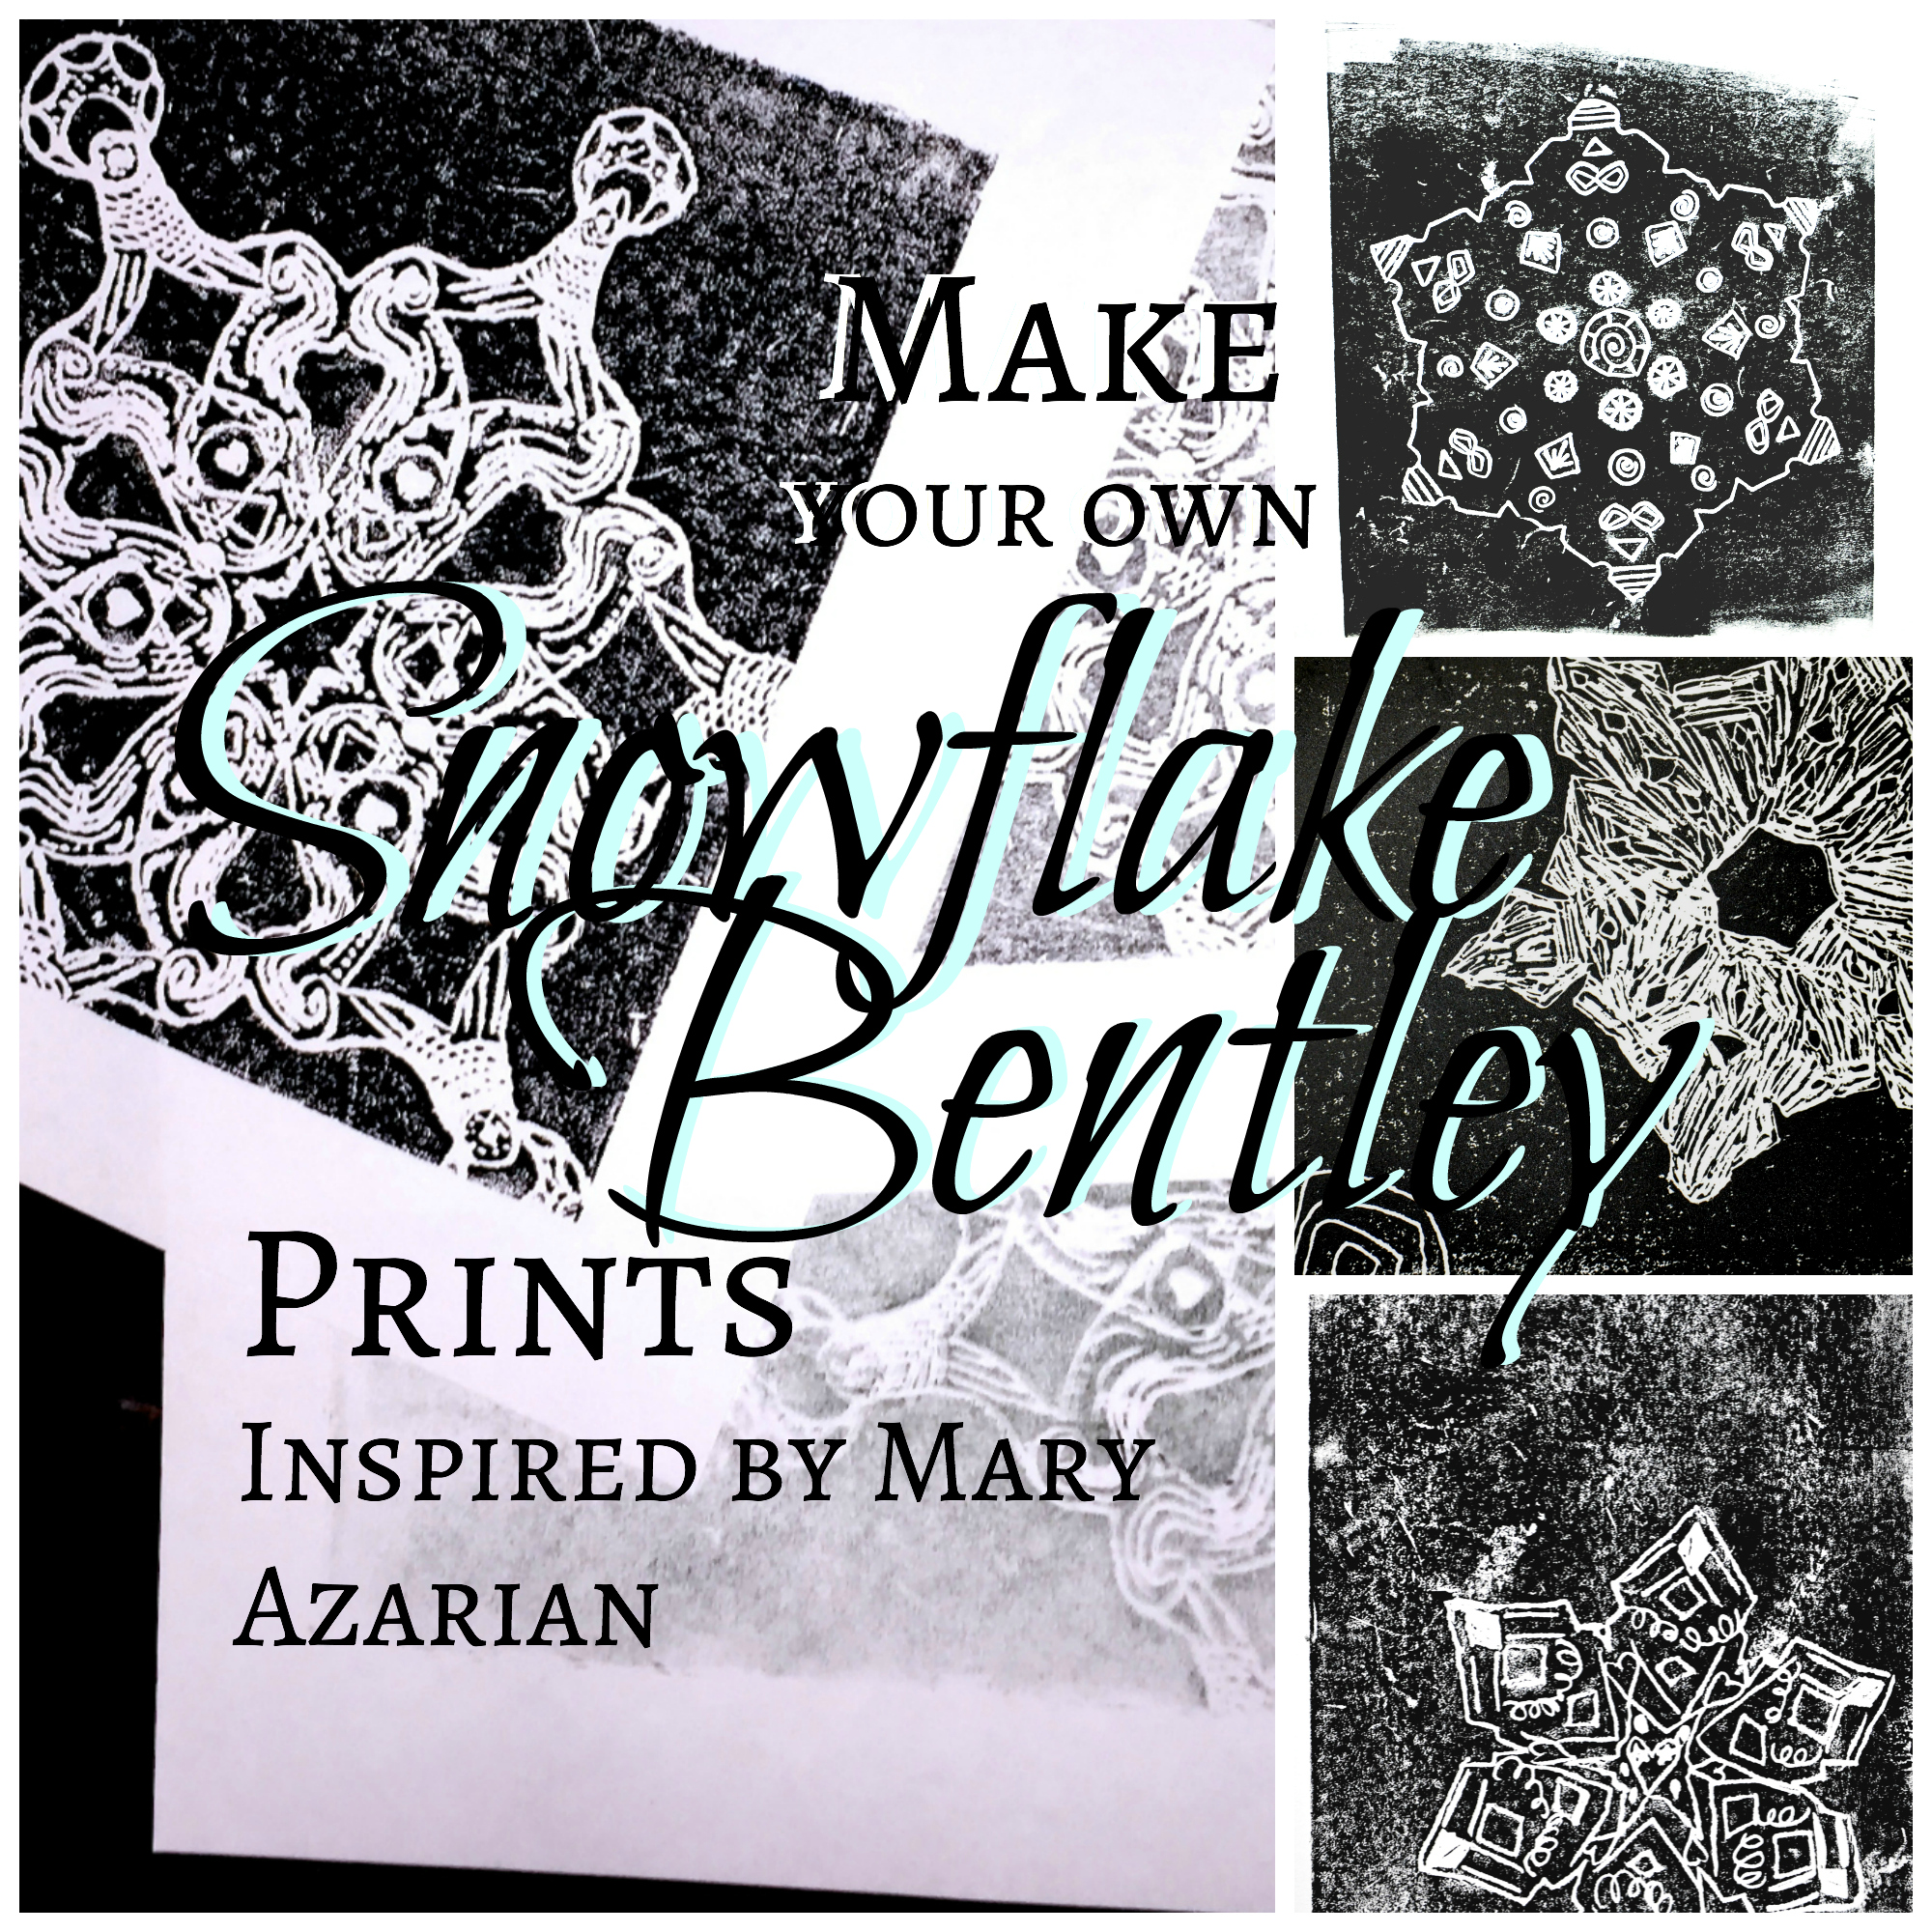 Snowflake Bentley Prints Inspired By Mary Azarian